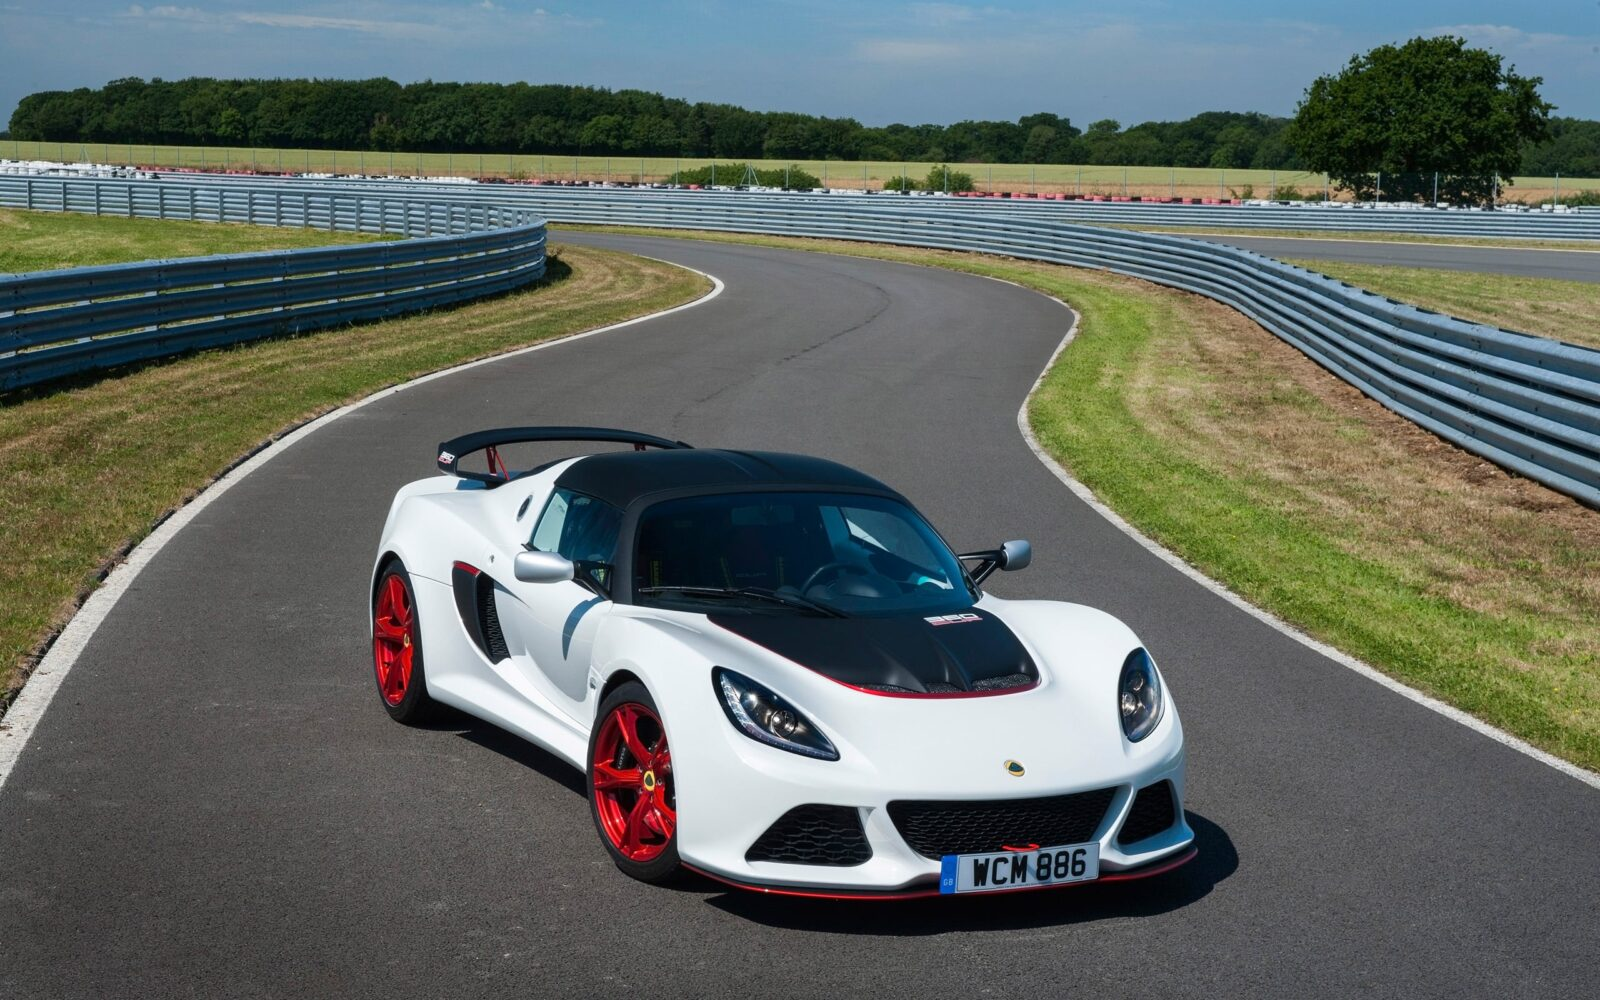 cool 2016 Lotus Exige full HD image